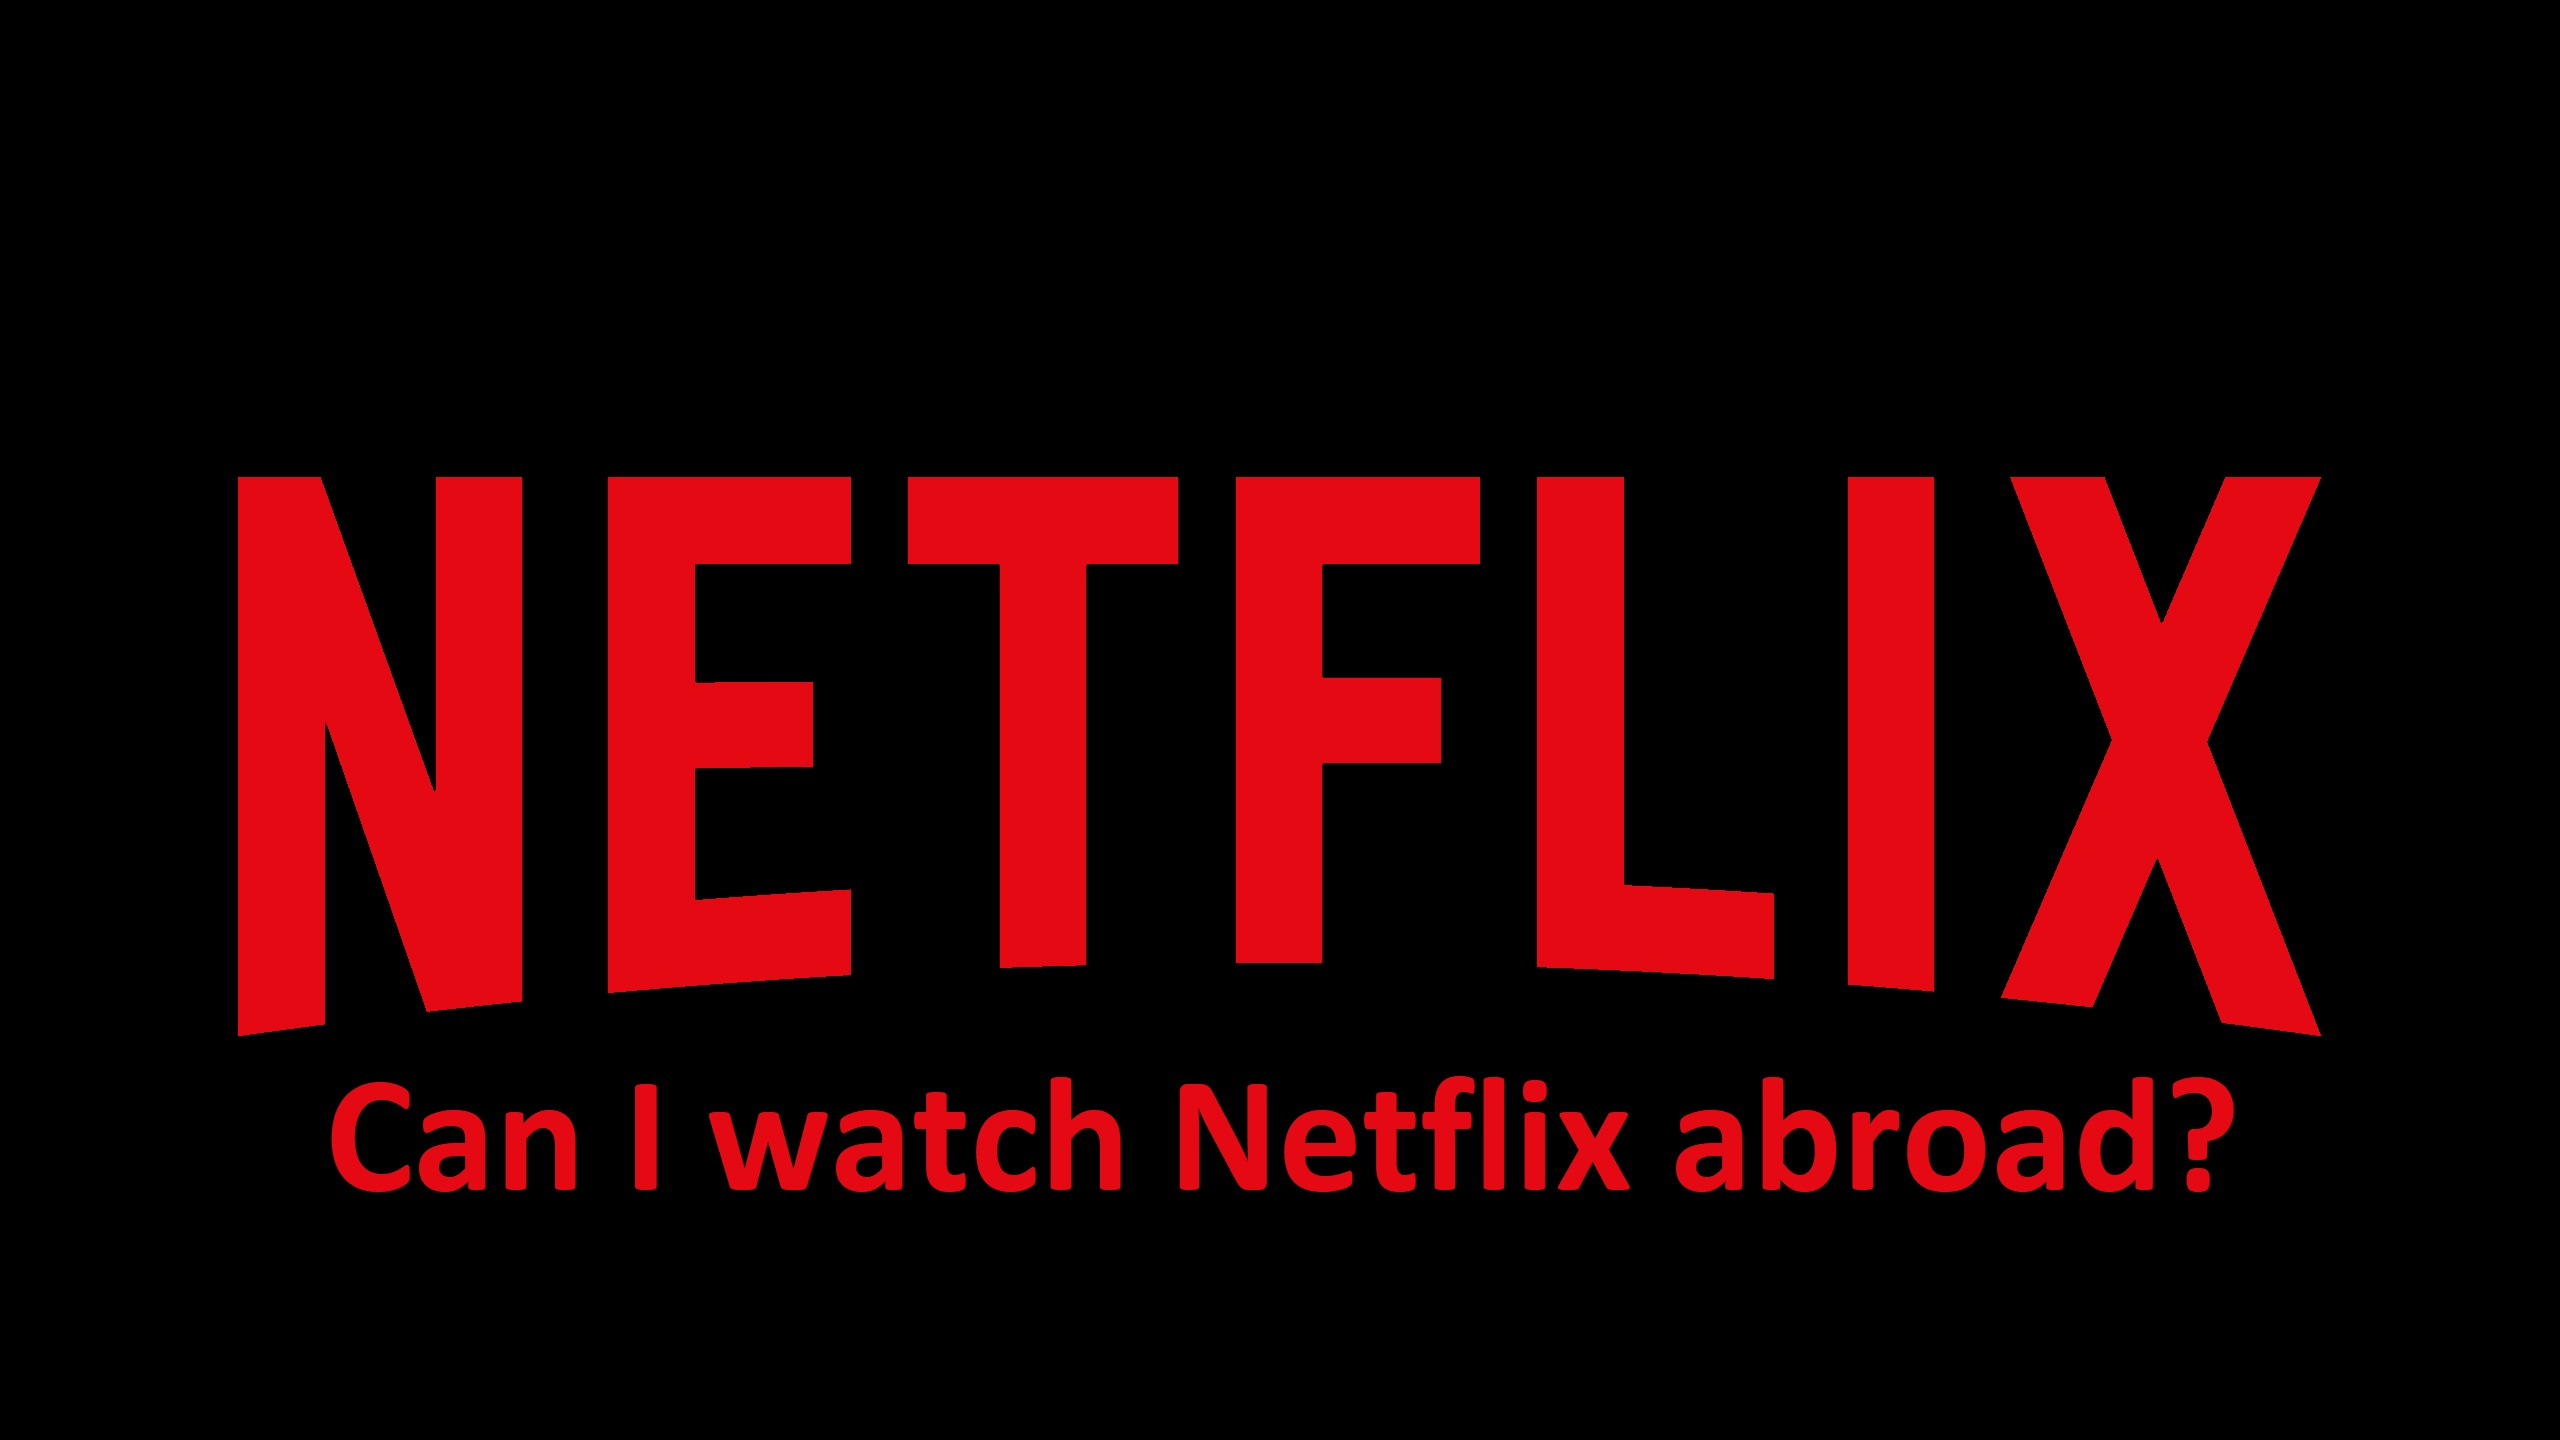 How can I watch netflix abroad or overseas with good plans?